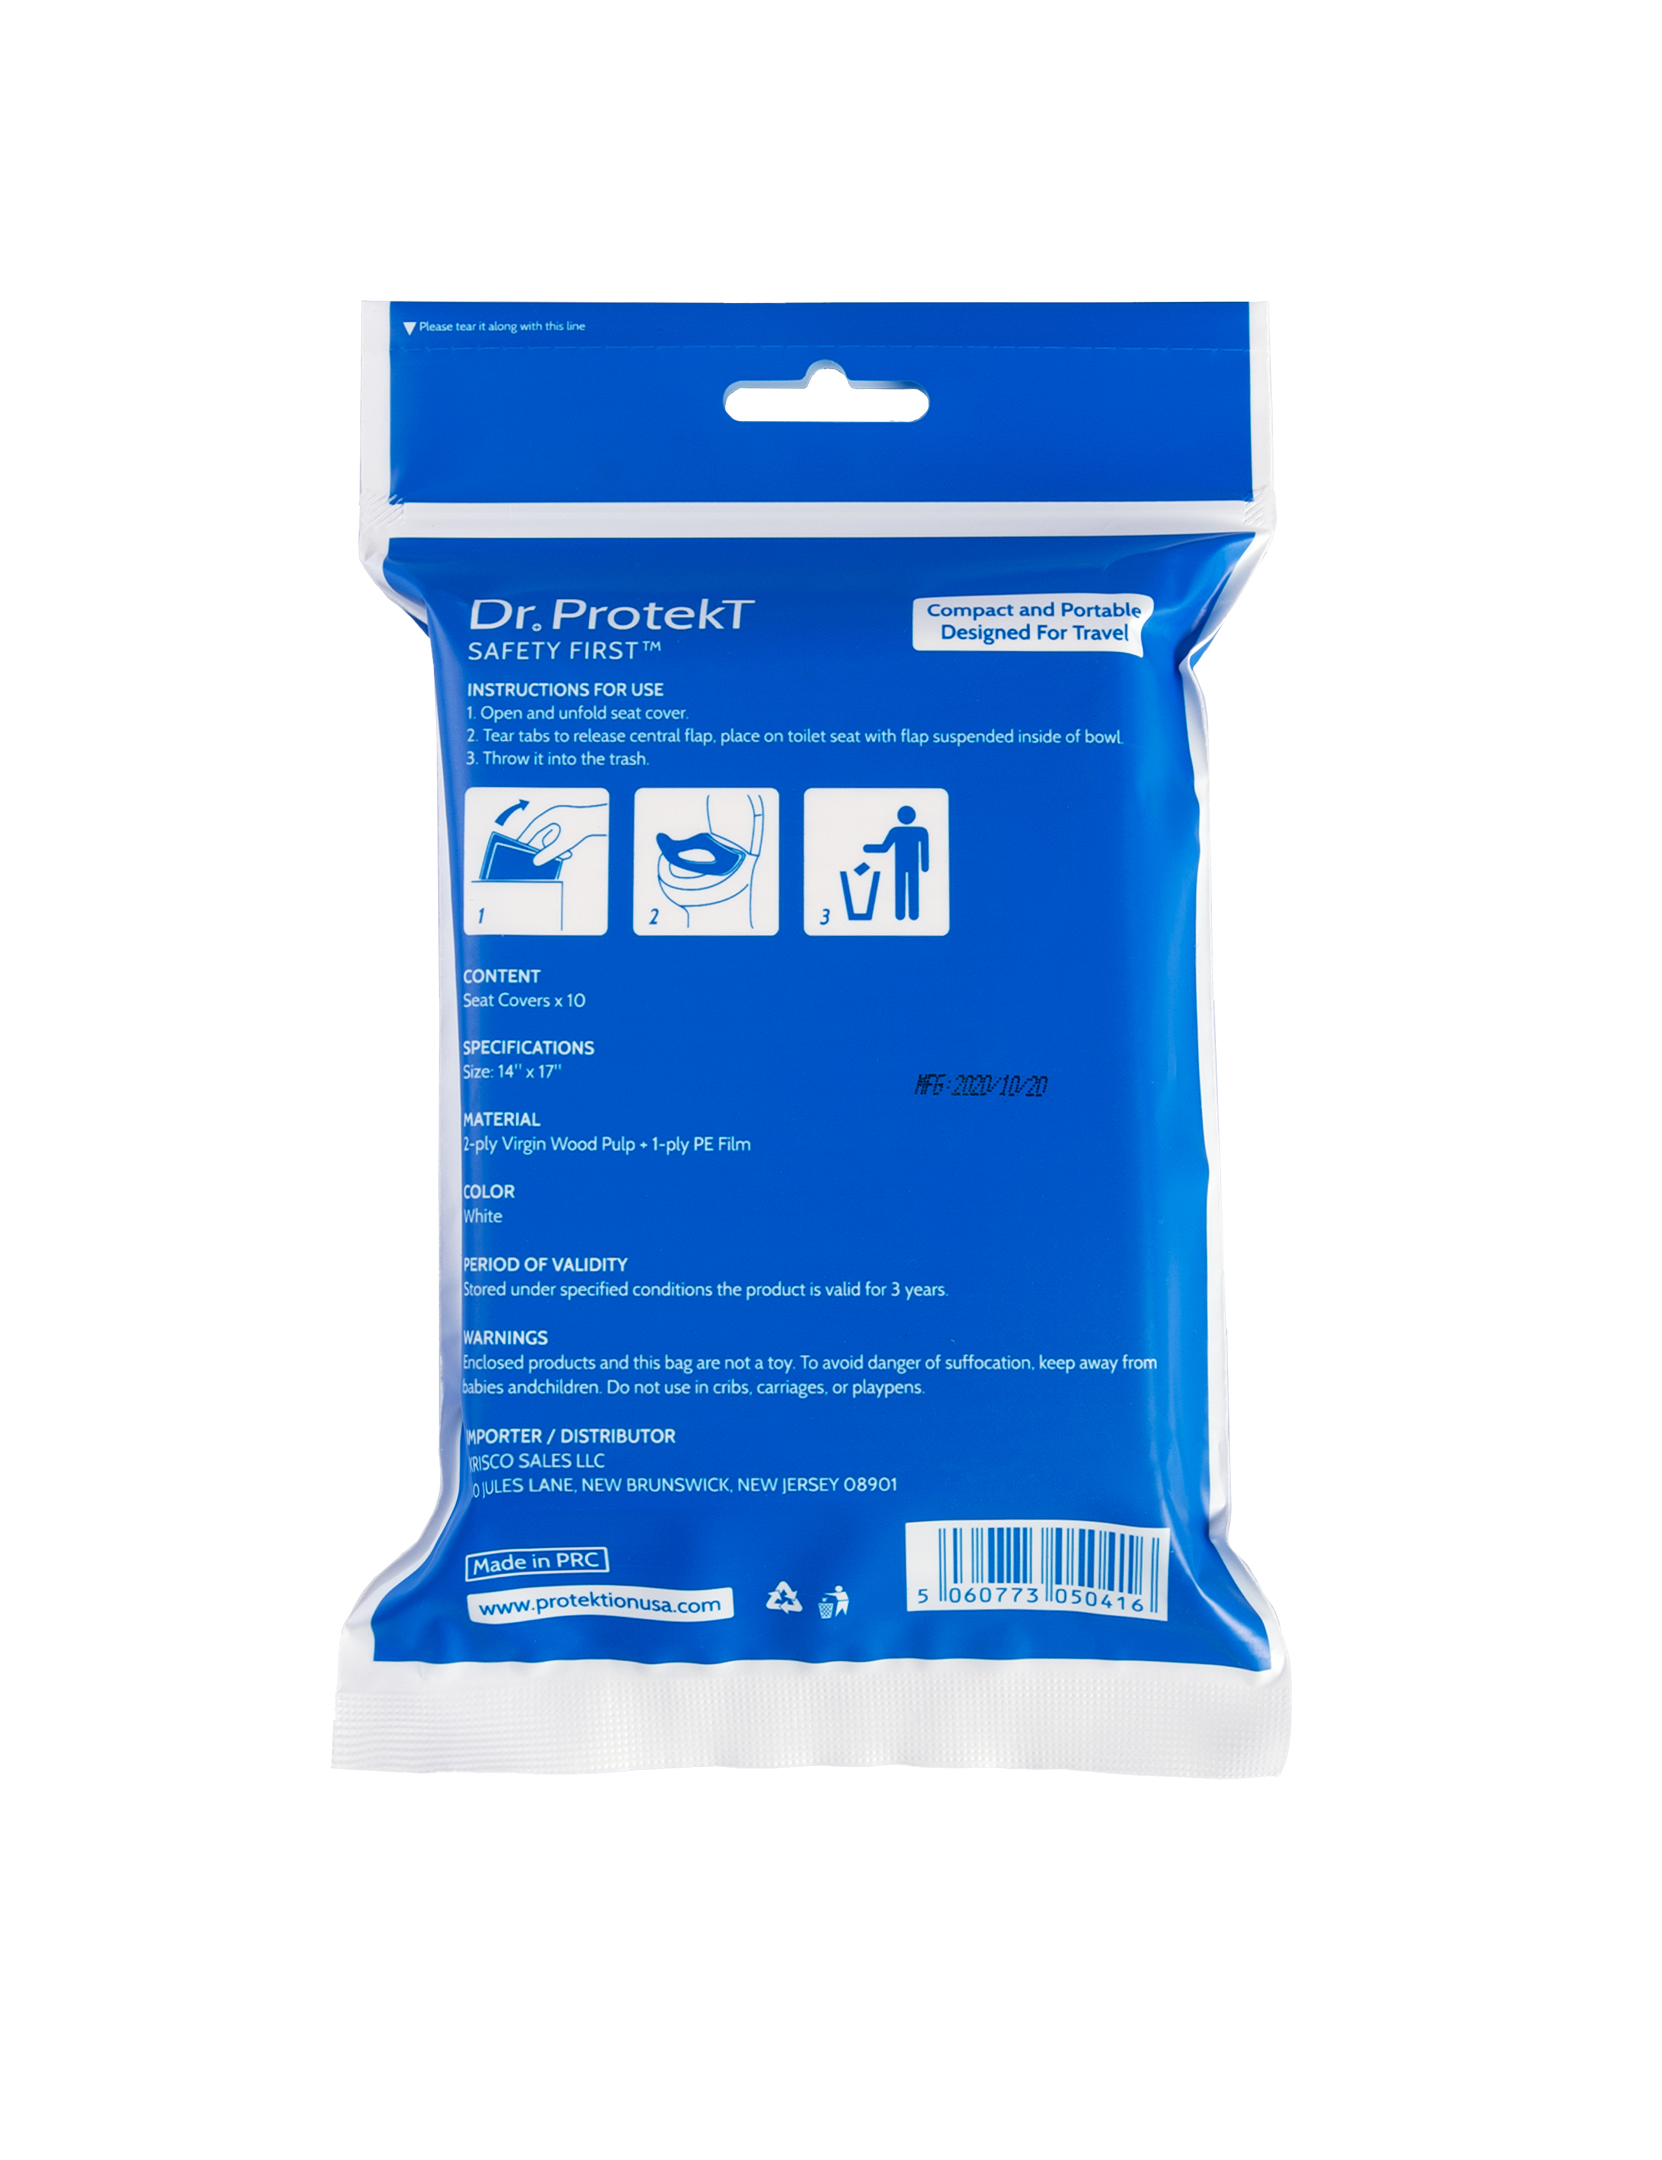 Dr. Protekt Safety First™ Essential Travel Protektion Kit